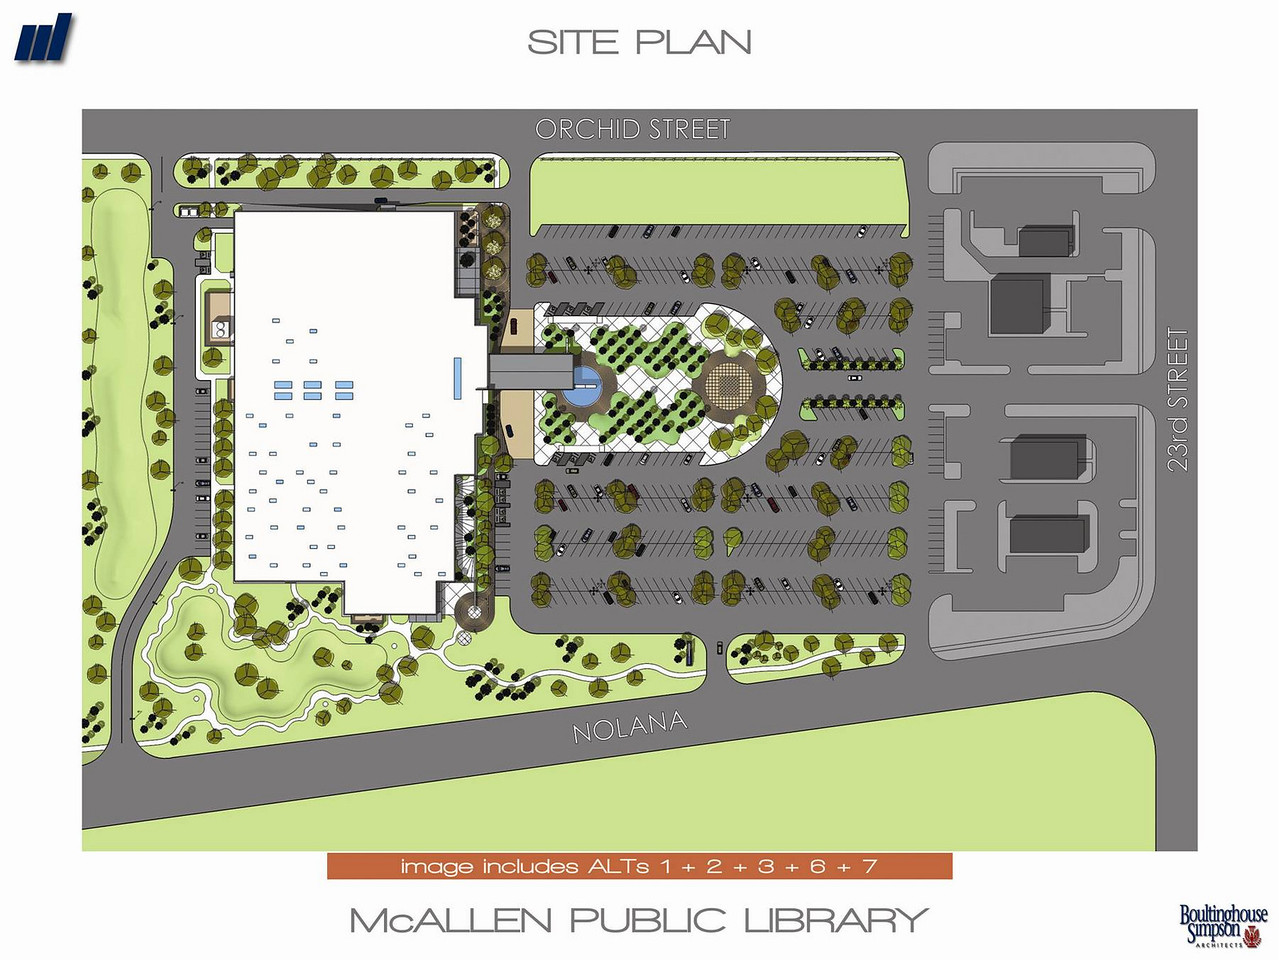 Bird's eye view of the site plan of the new Main Library.